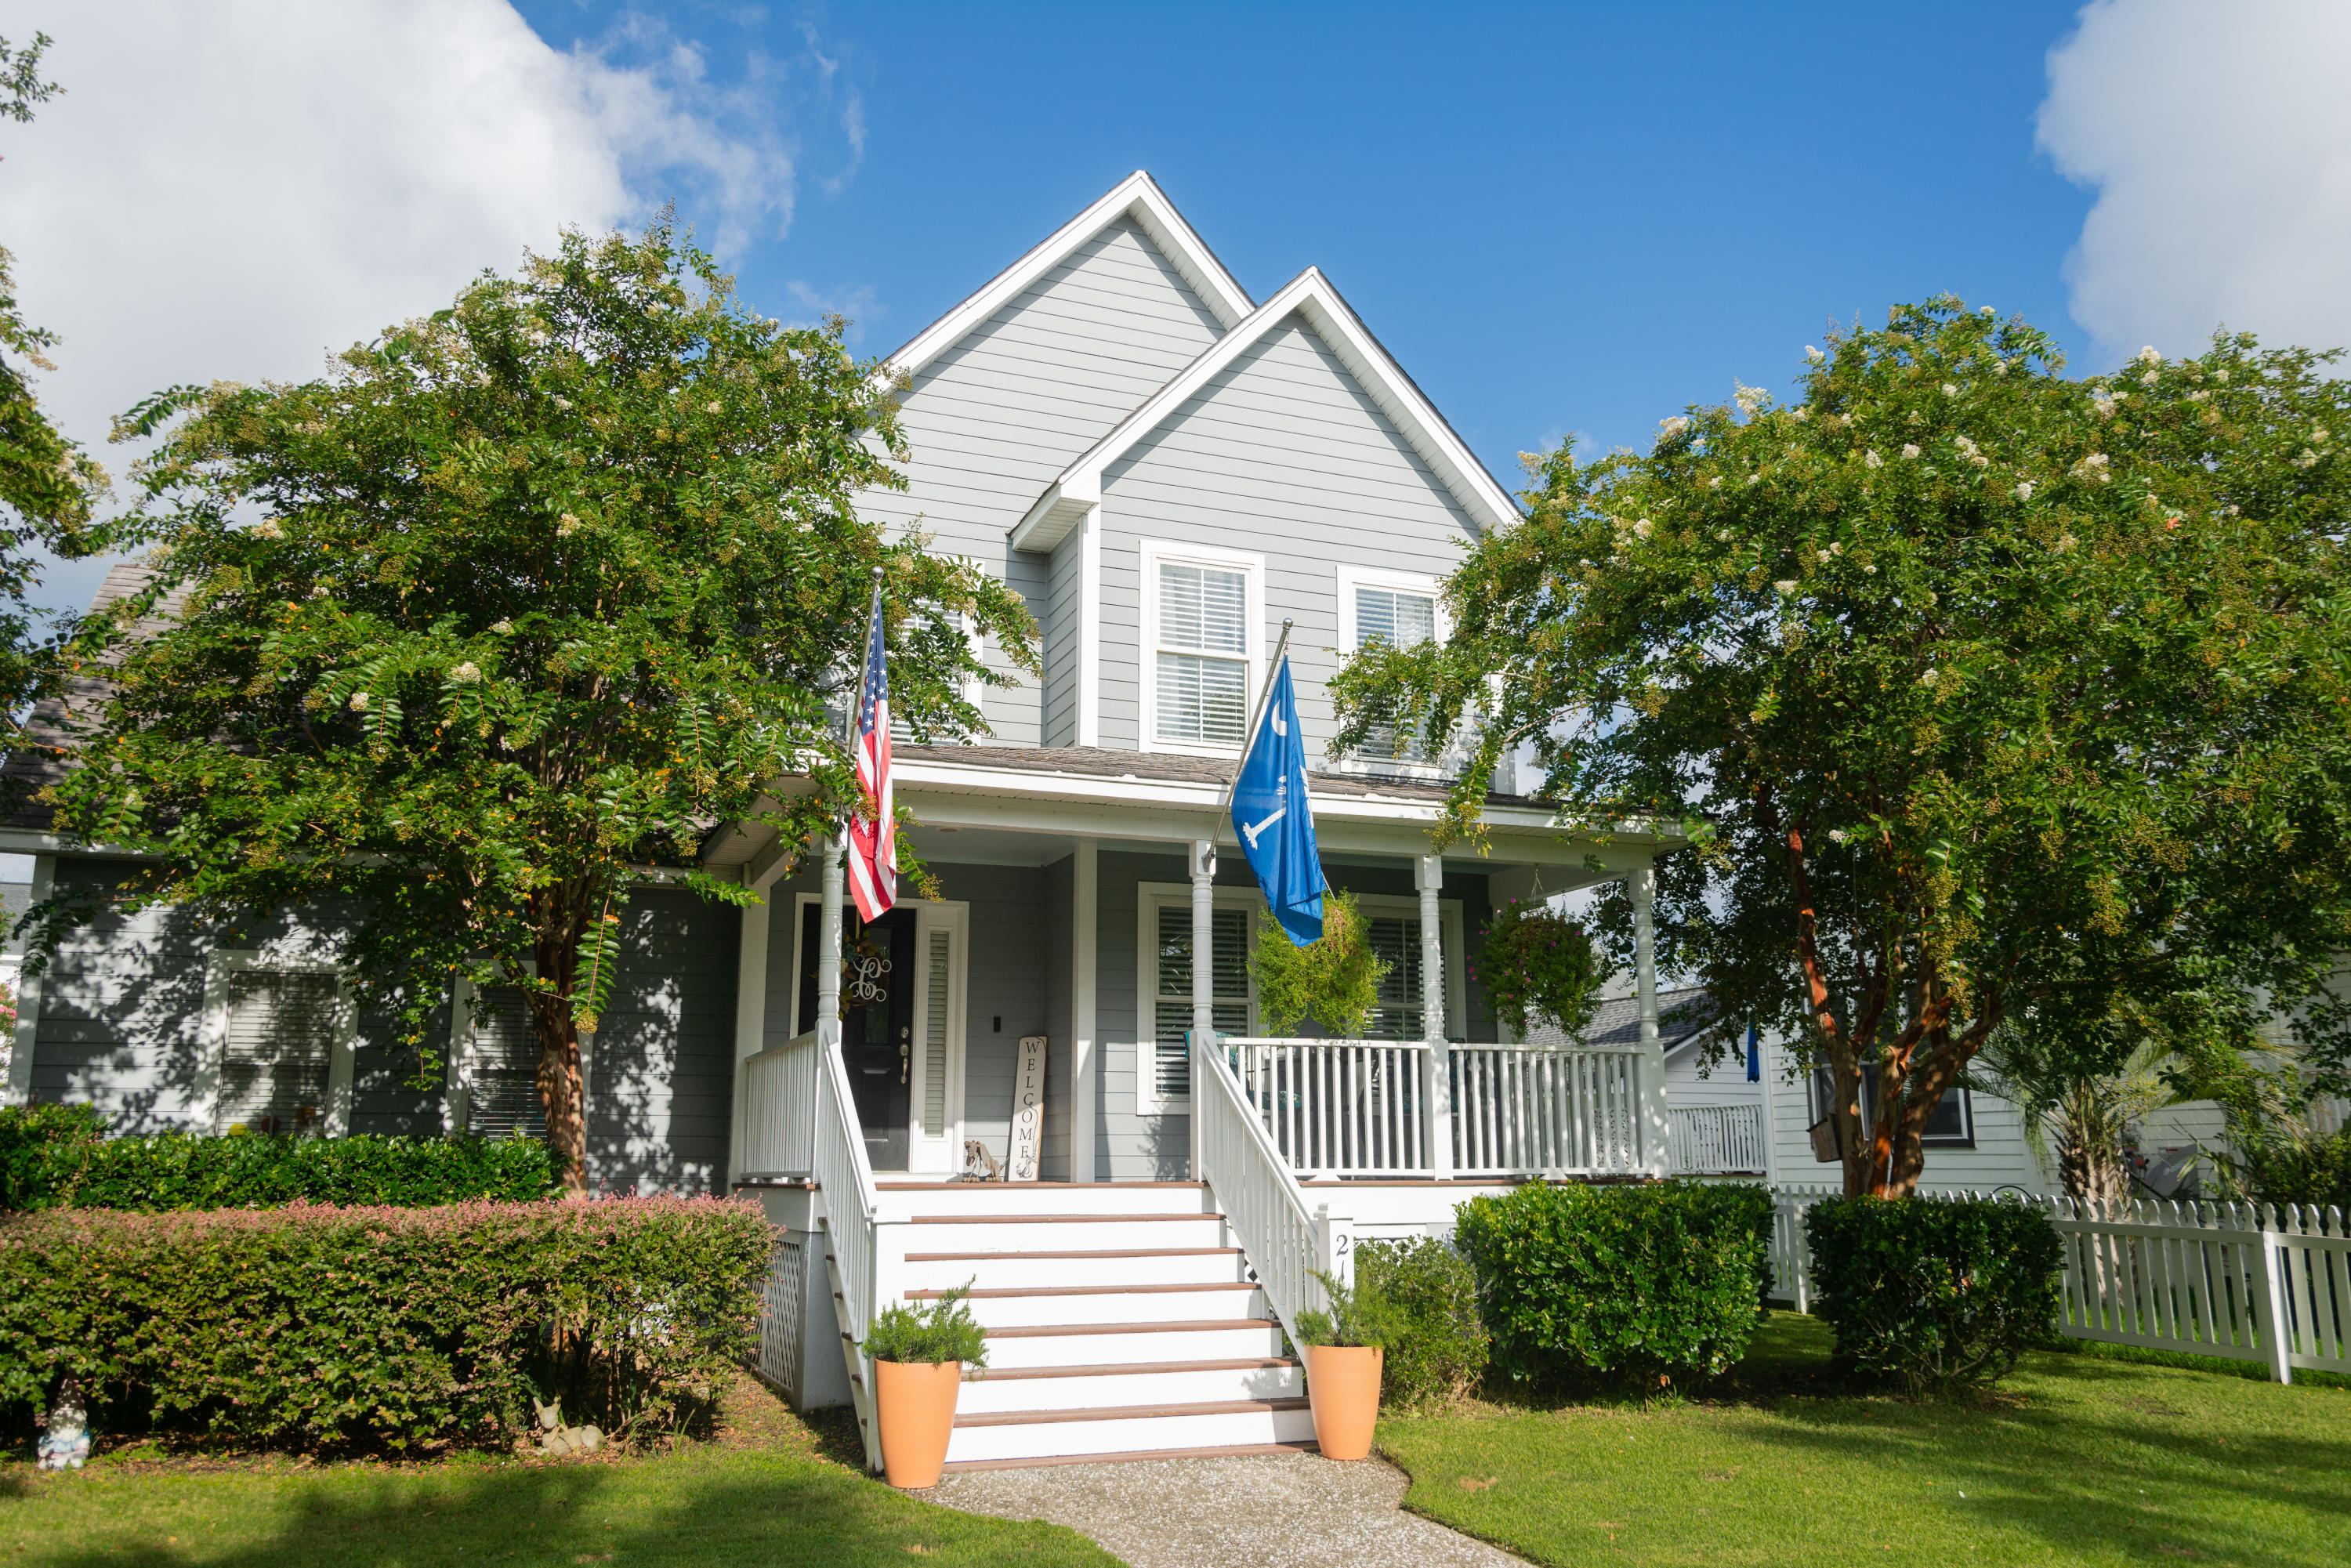 Rivertowne On The Wando Homes For Sale - 2178 Hartfords Bluff, Mount Pleasant, SC - 0